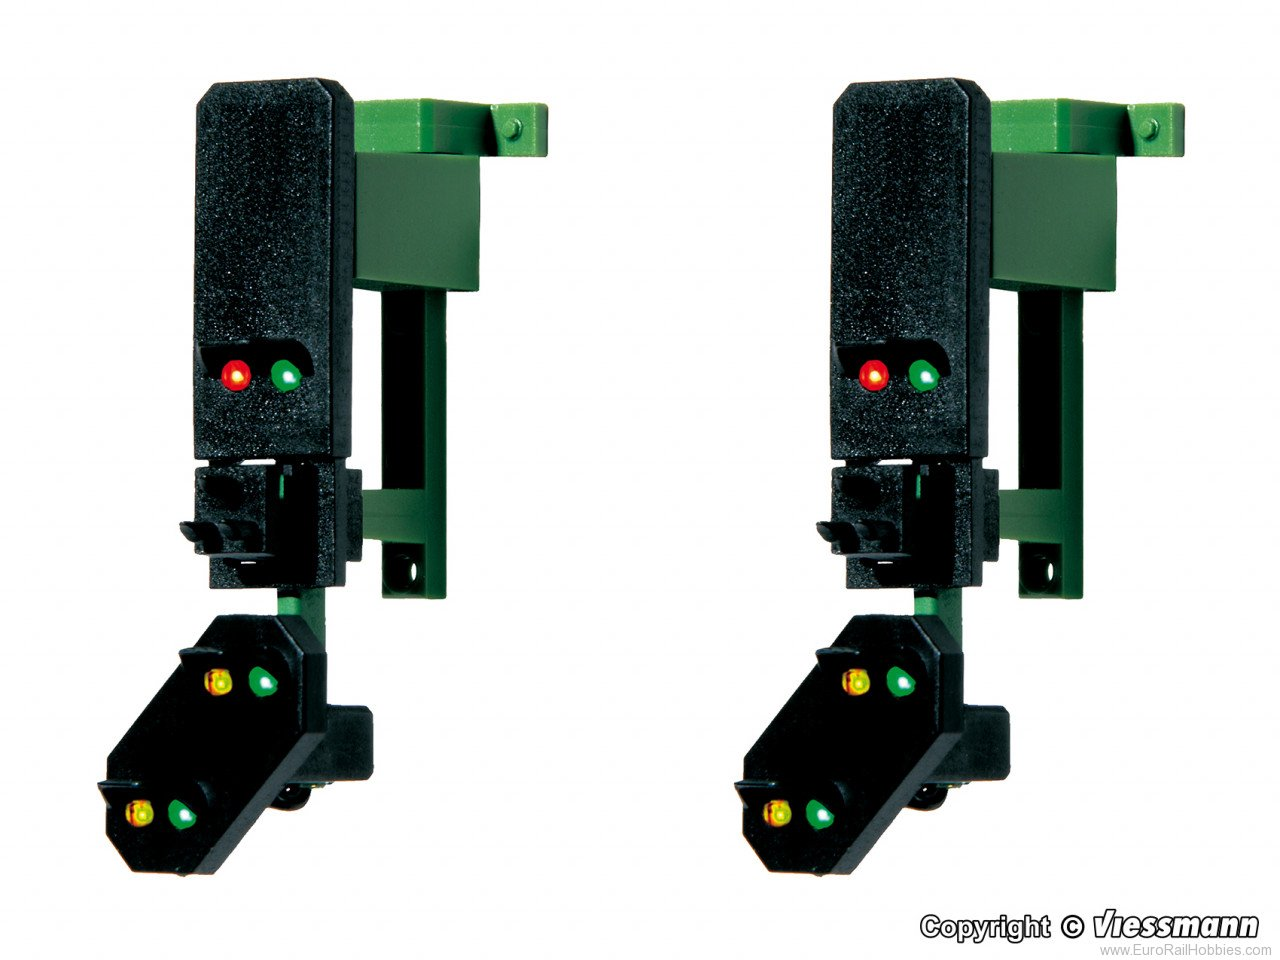 Viessmann 4752 HO Block signal heads with distant signal and